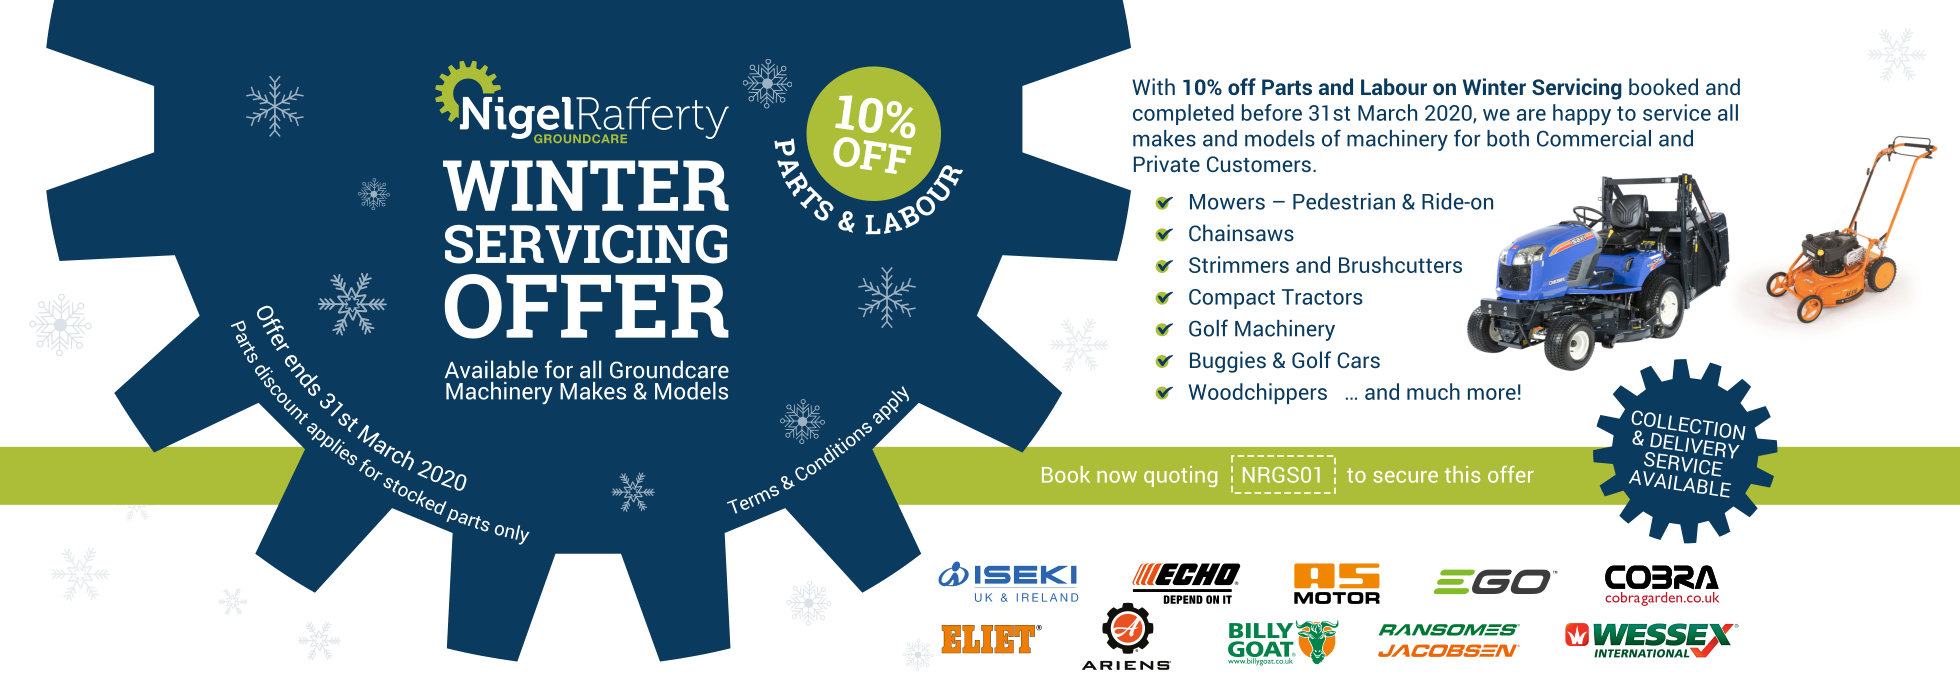 Winter Servicing offer